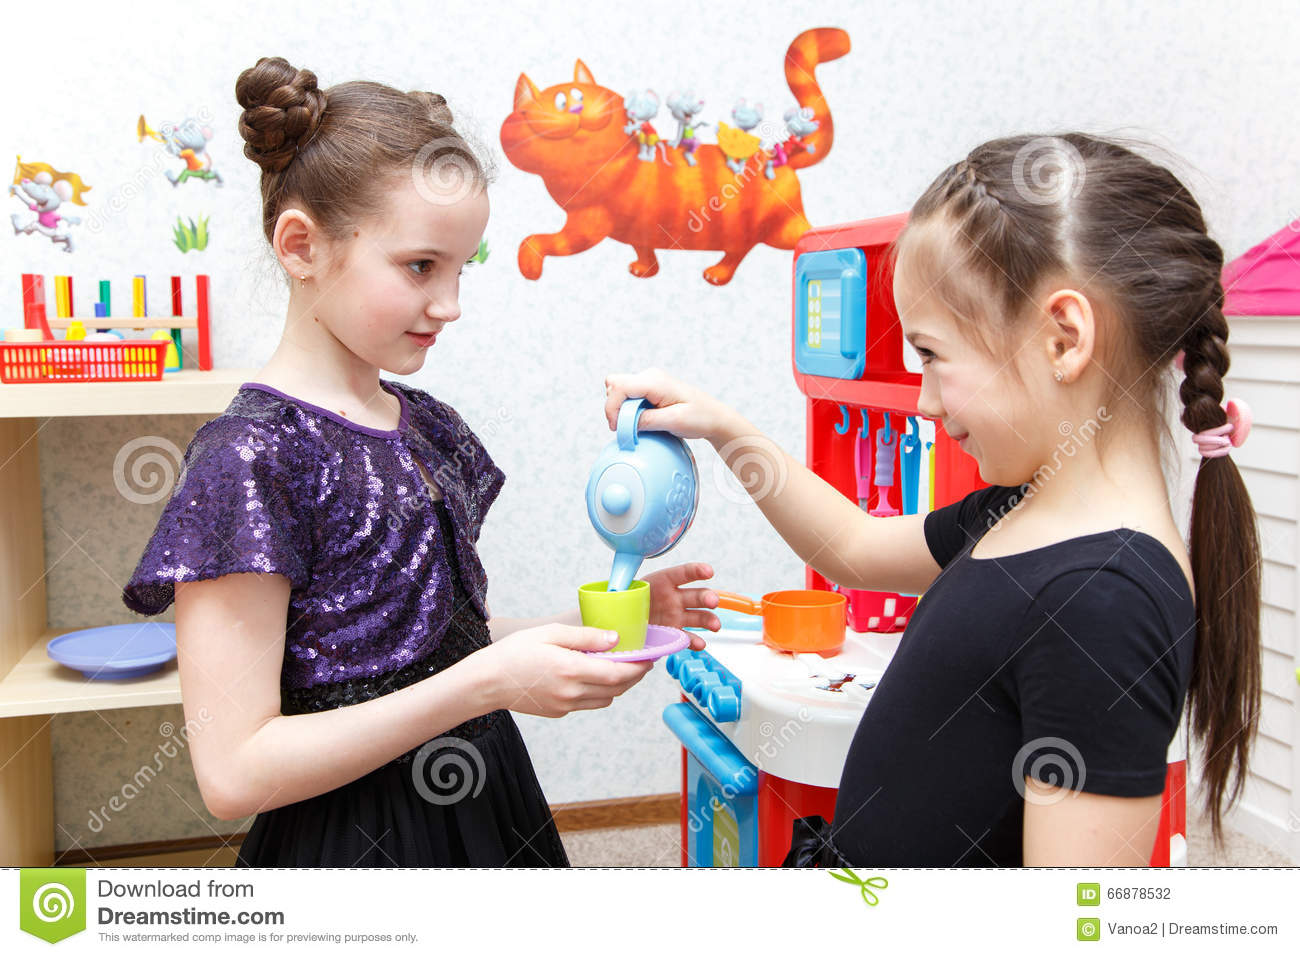 Toys For Day Care Centers : Game toy stock photos royalty free images dreamstime